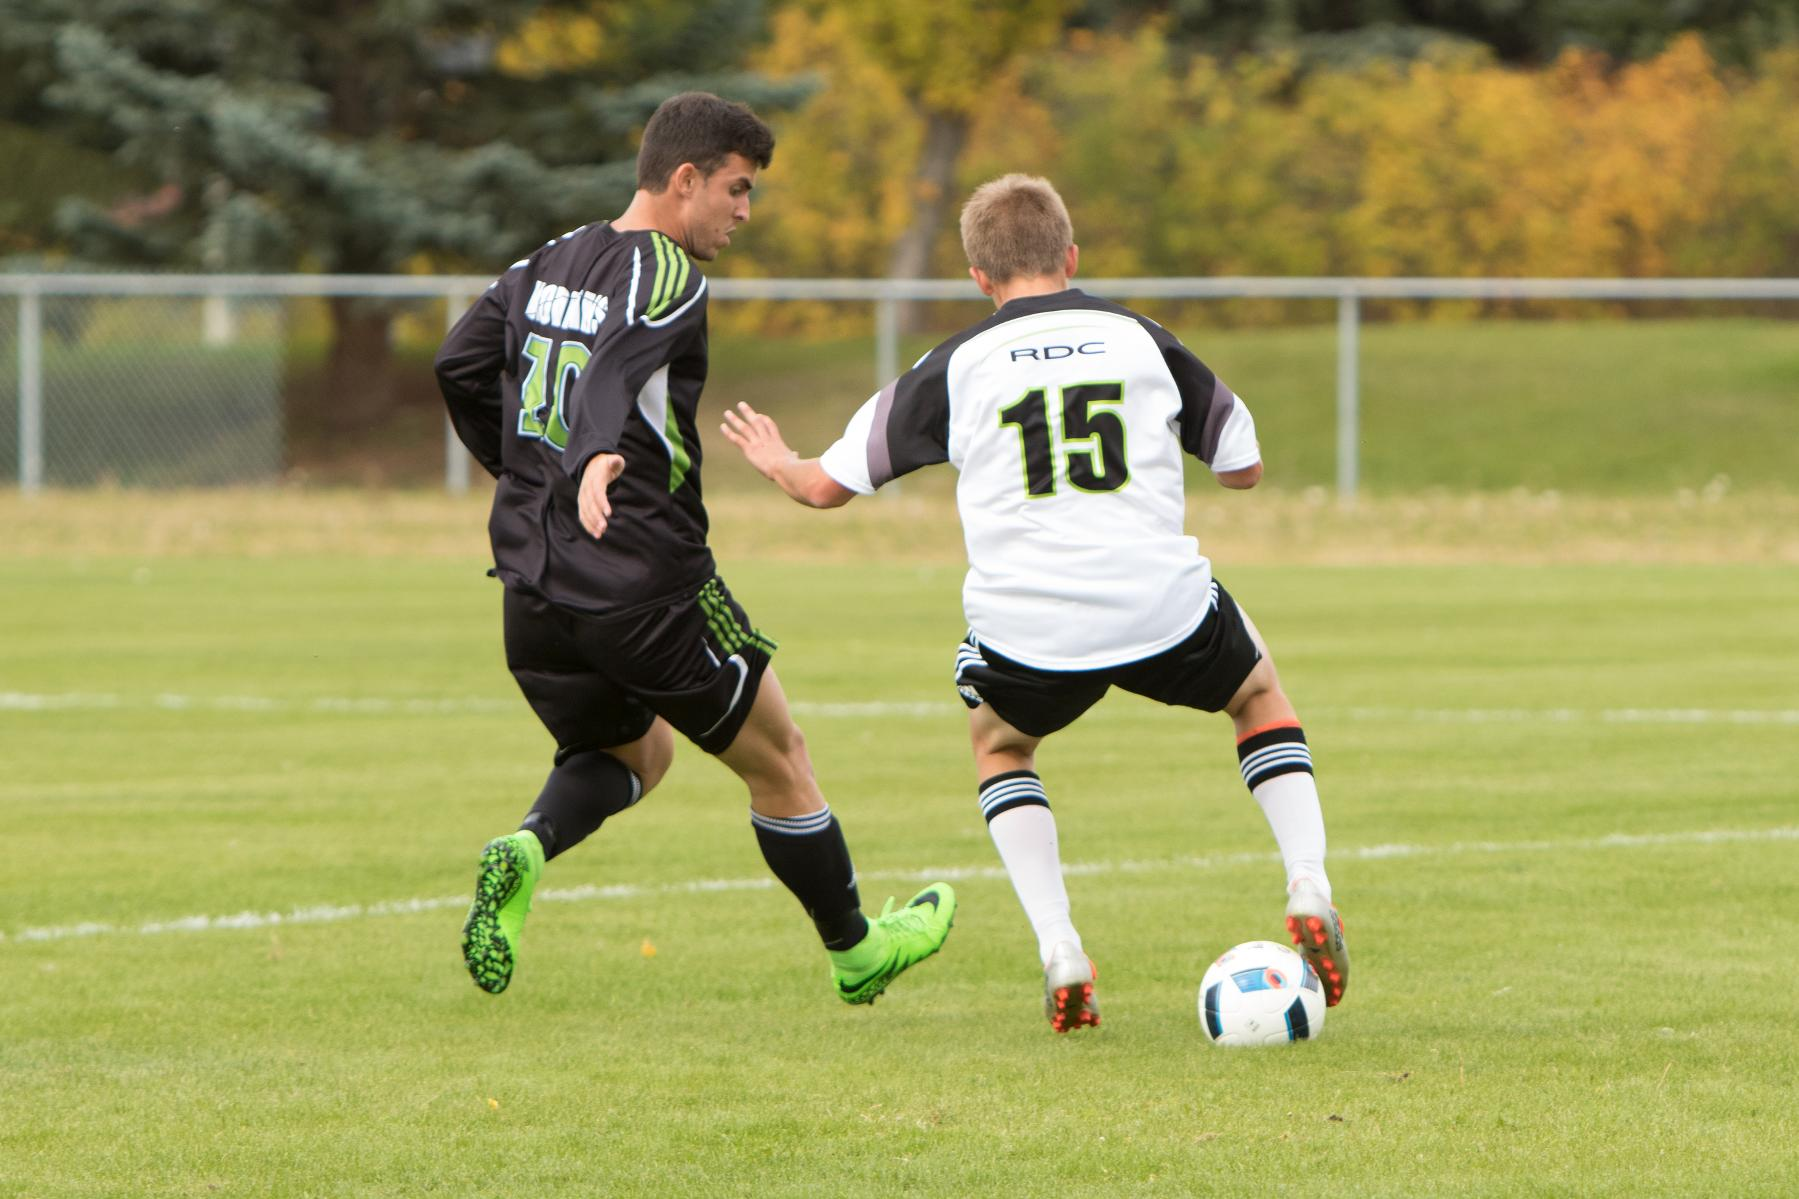 Defender Tanner Steenbergen (15) played the full 90 minutes in Lethbridge on Saturday. Photo - Tony Hansen